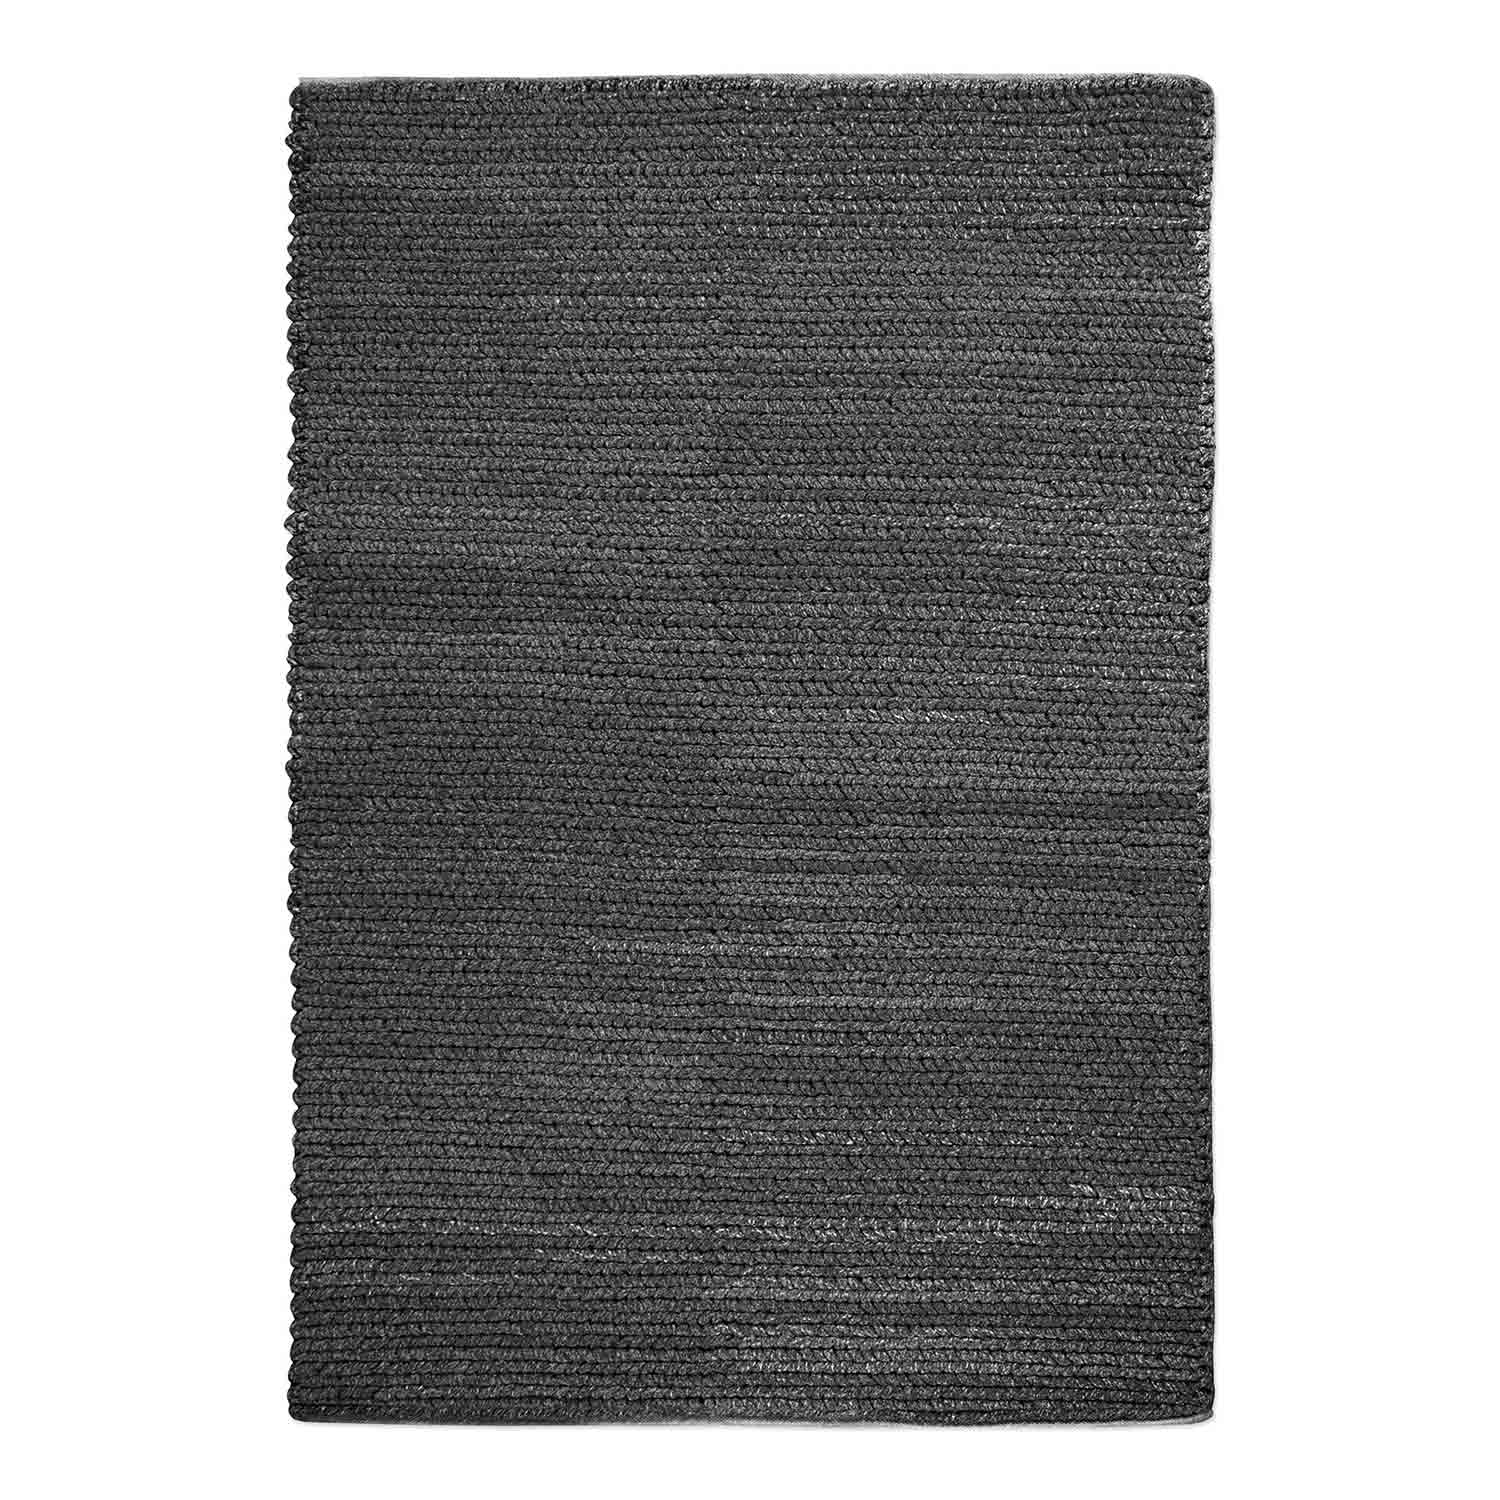 Uttermost Europa 5 x 8 Rug - Charcoal